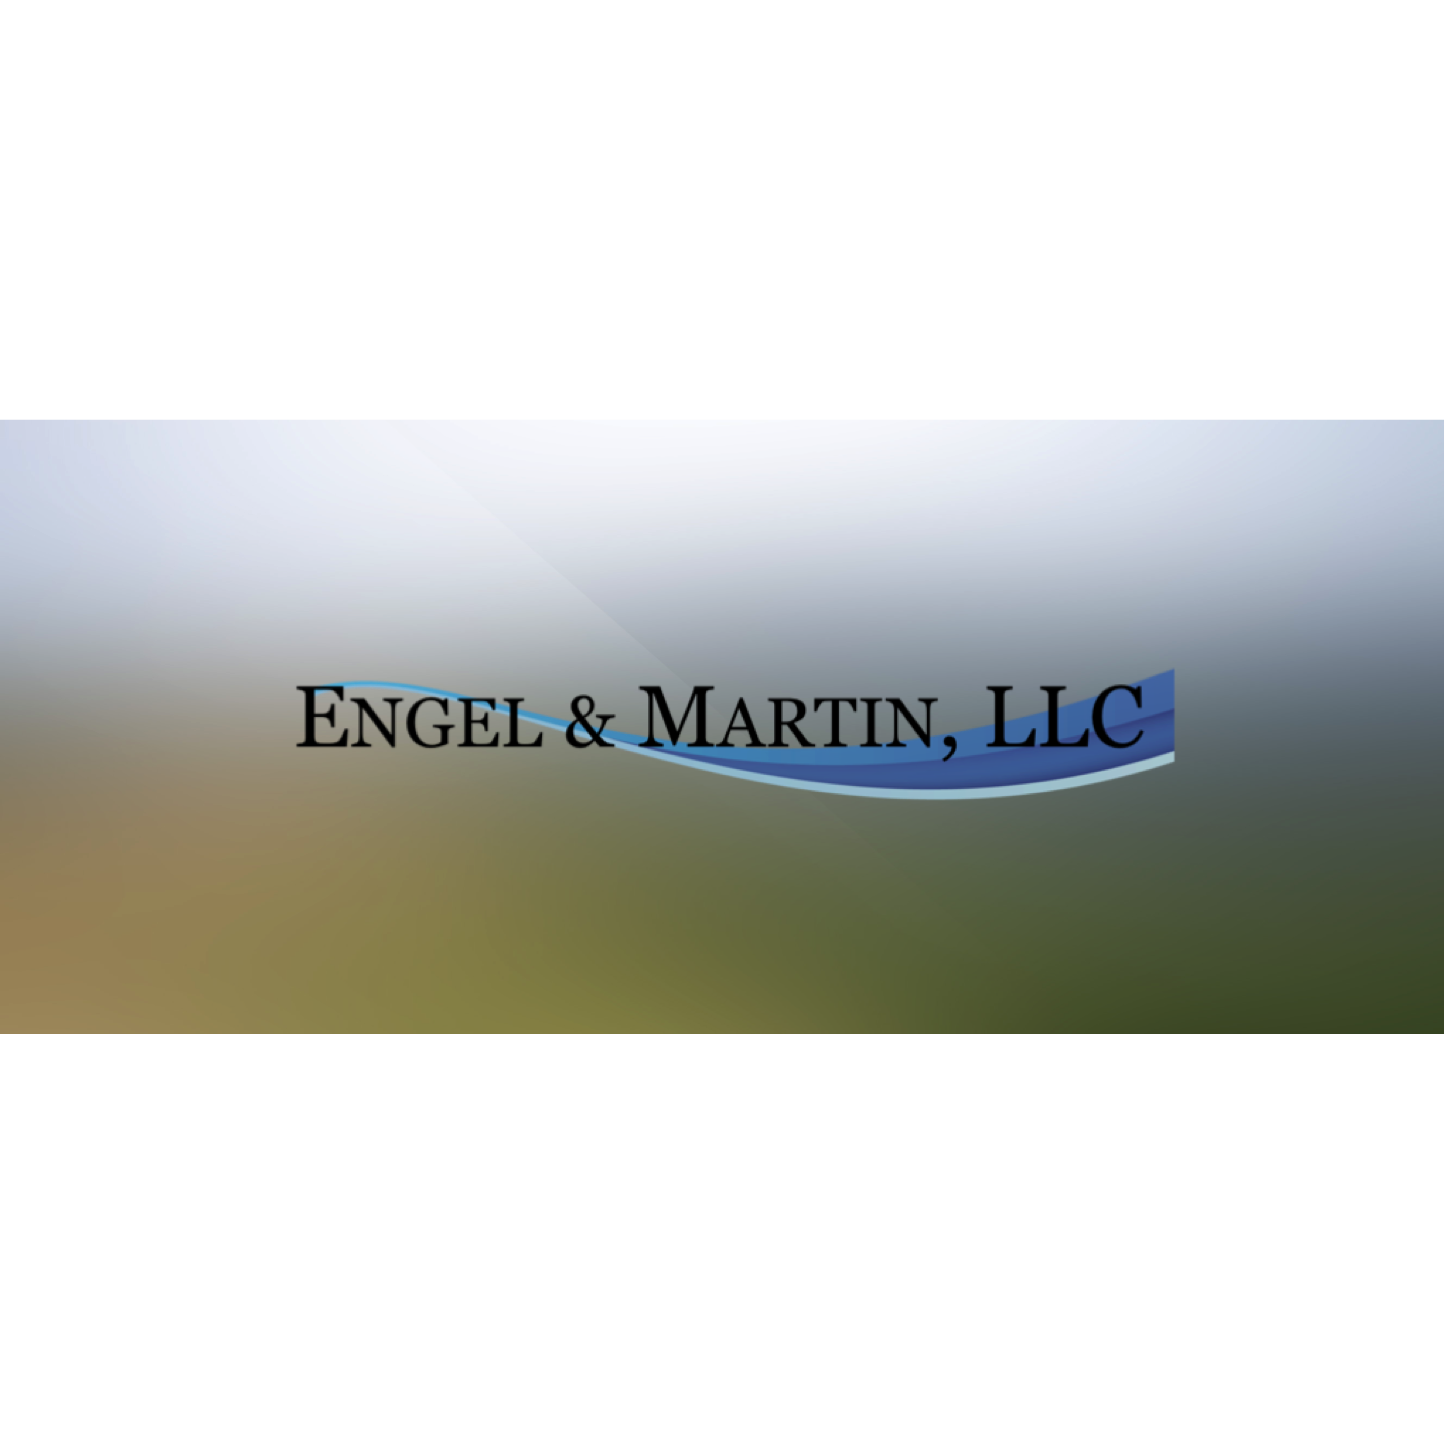 Engel & Martin LLC